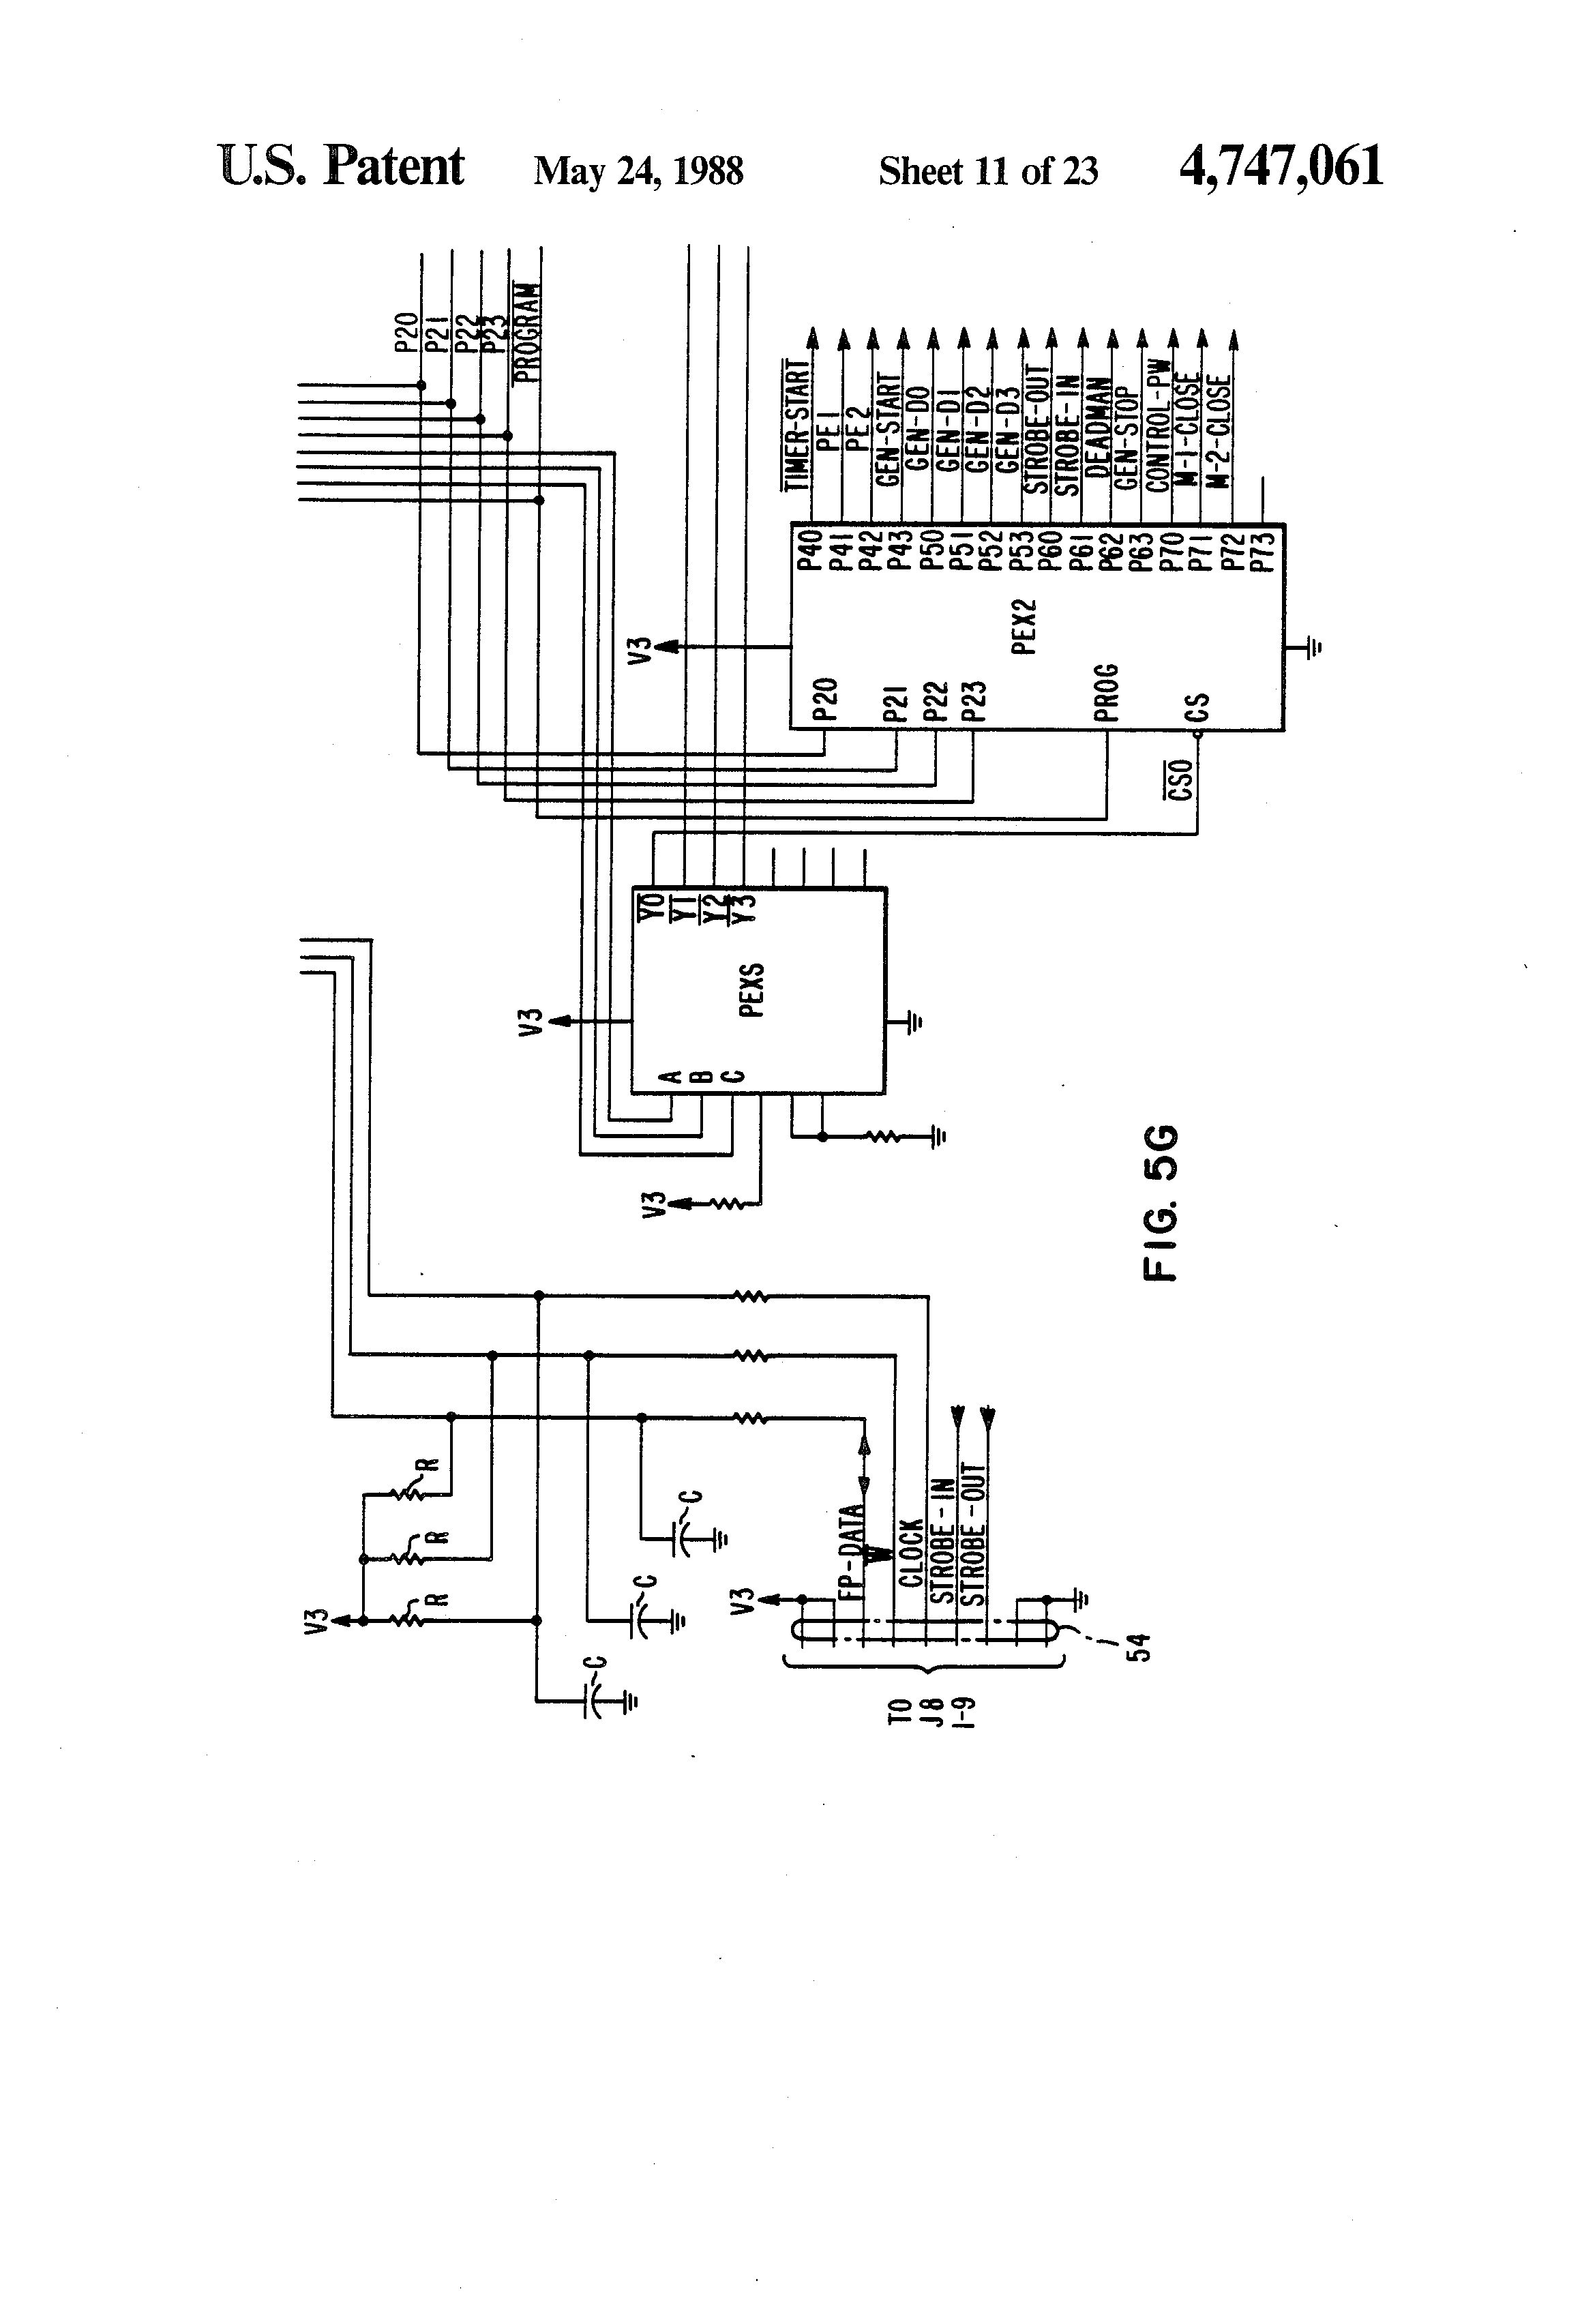 P42 Commercial Wiring Diagram 29 Wiring Diagram Images